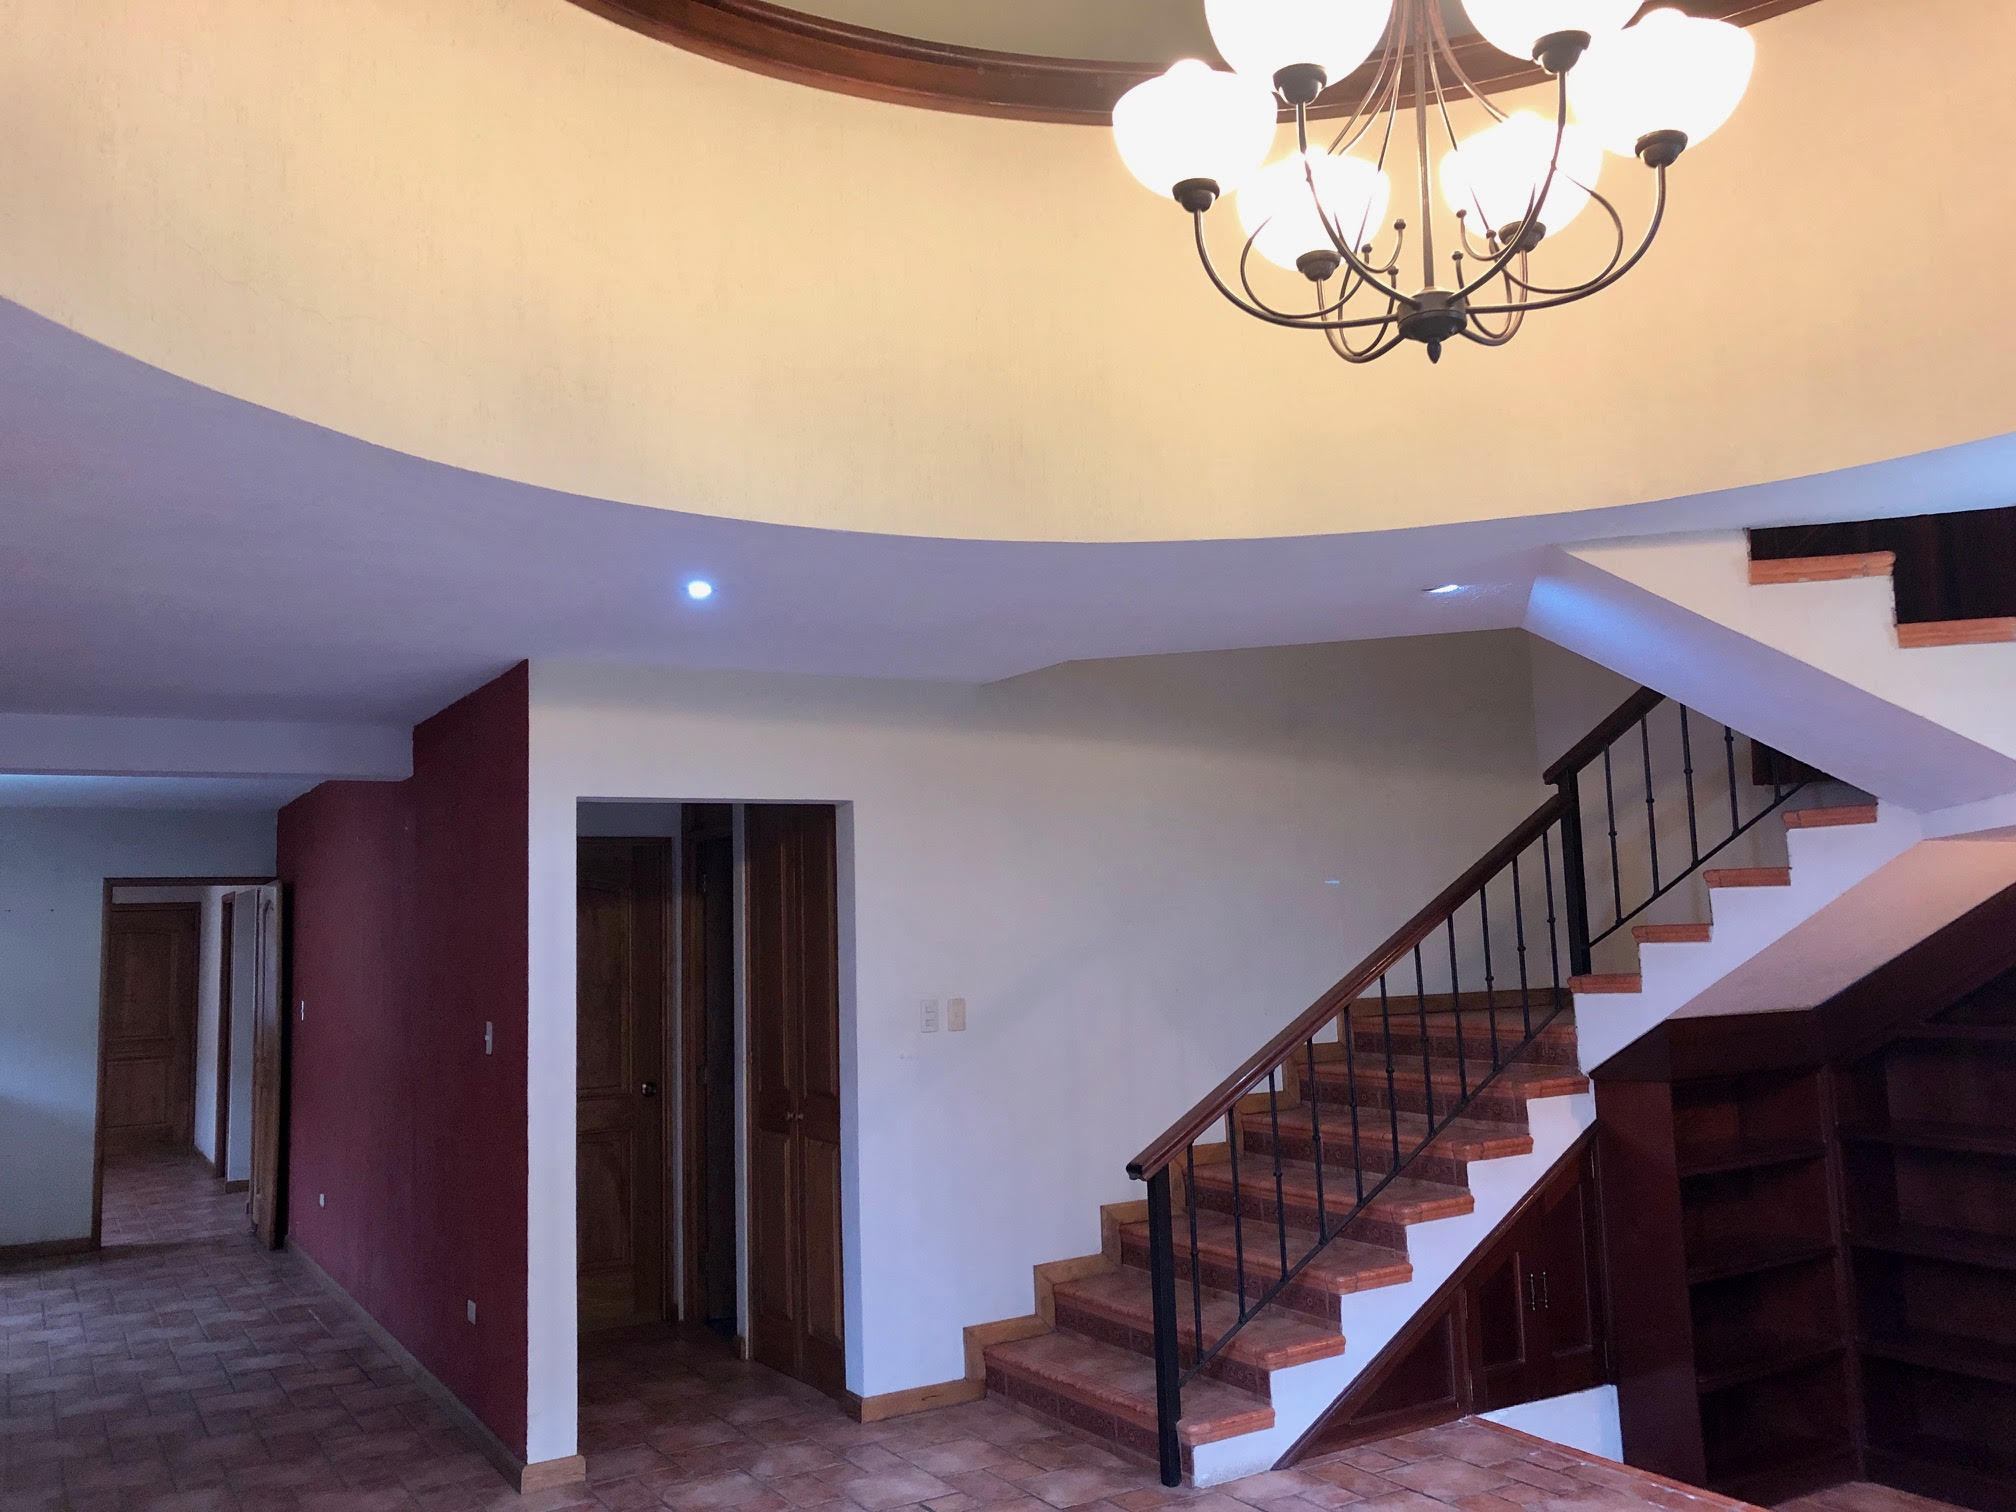 4991 BEAUTIFUL HOUSE FOR SALE IN HACIENDA SANTO DOMINGO, SAN LUCAS